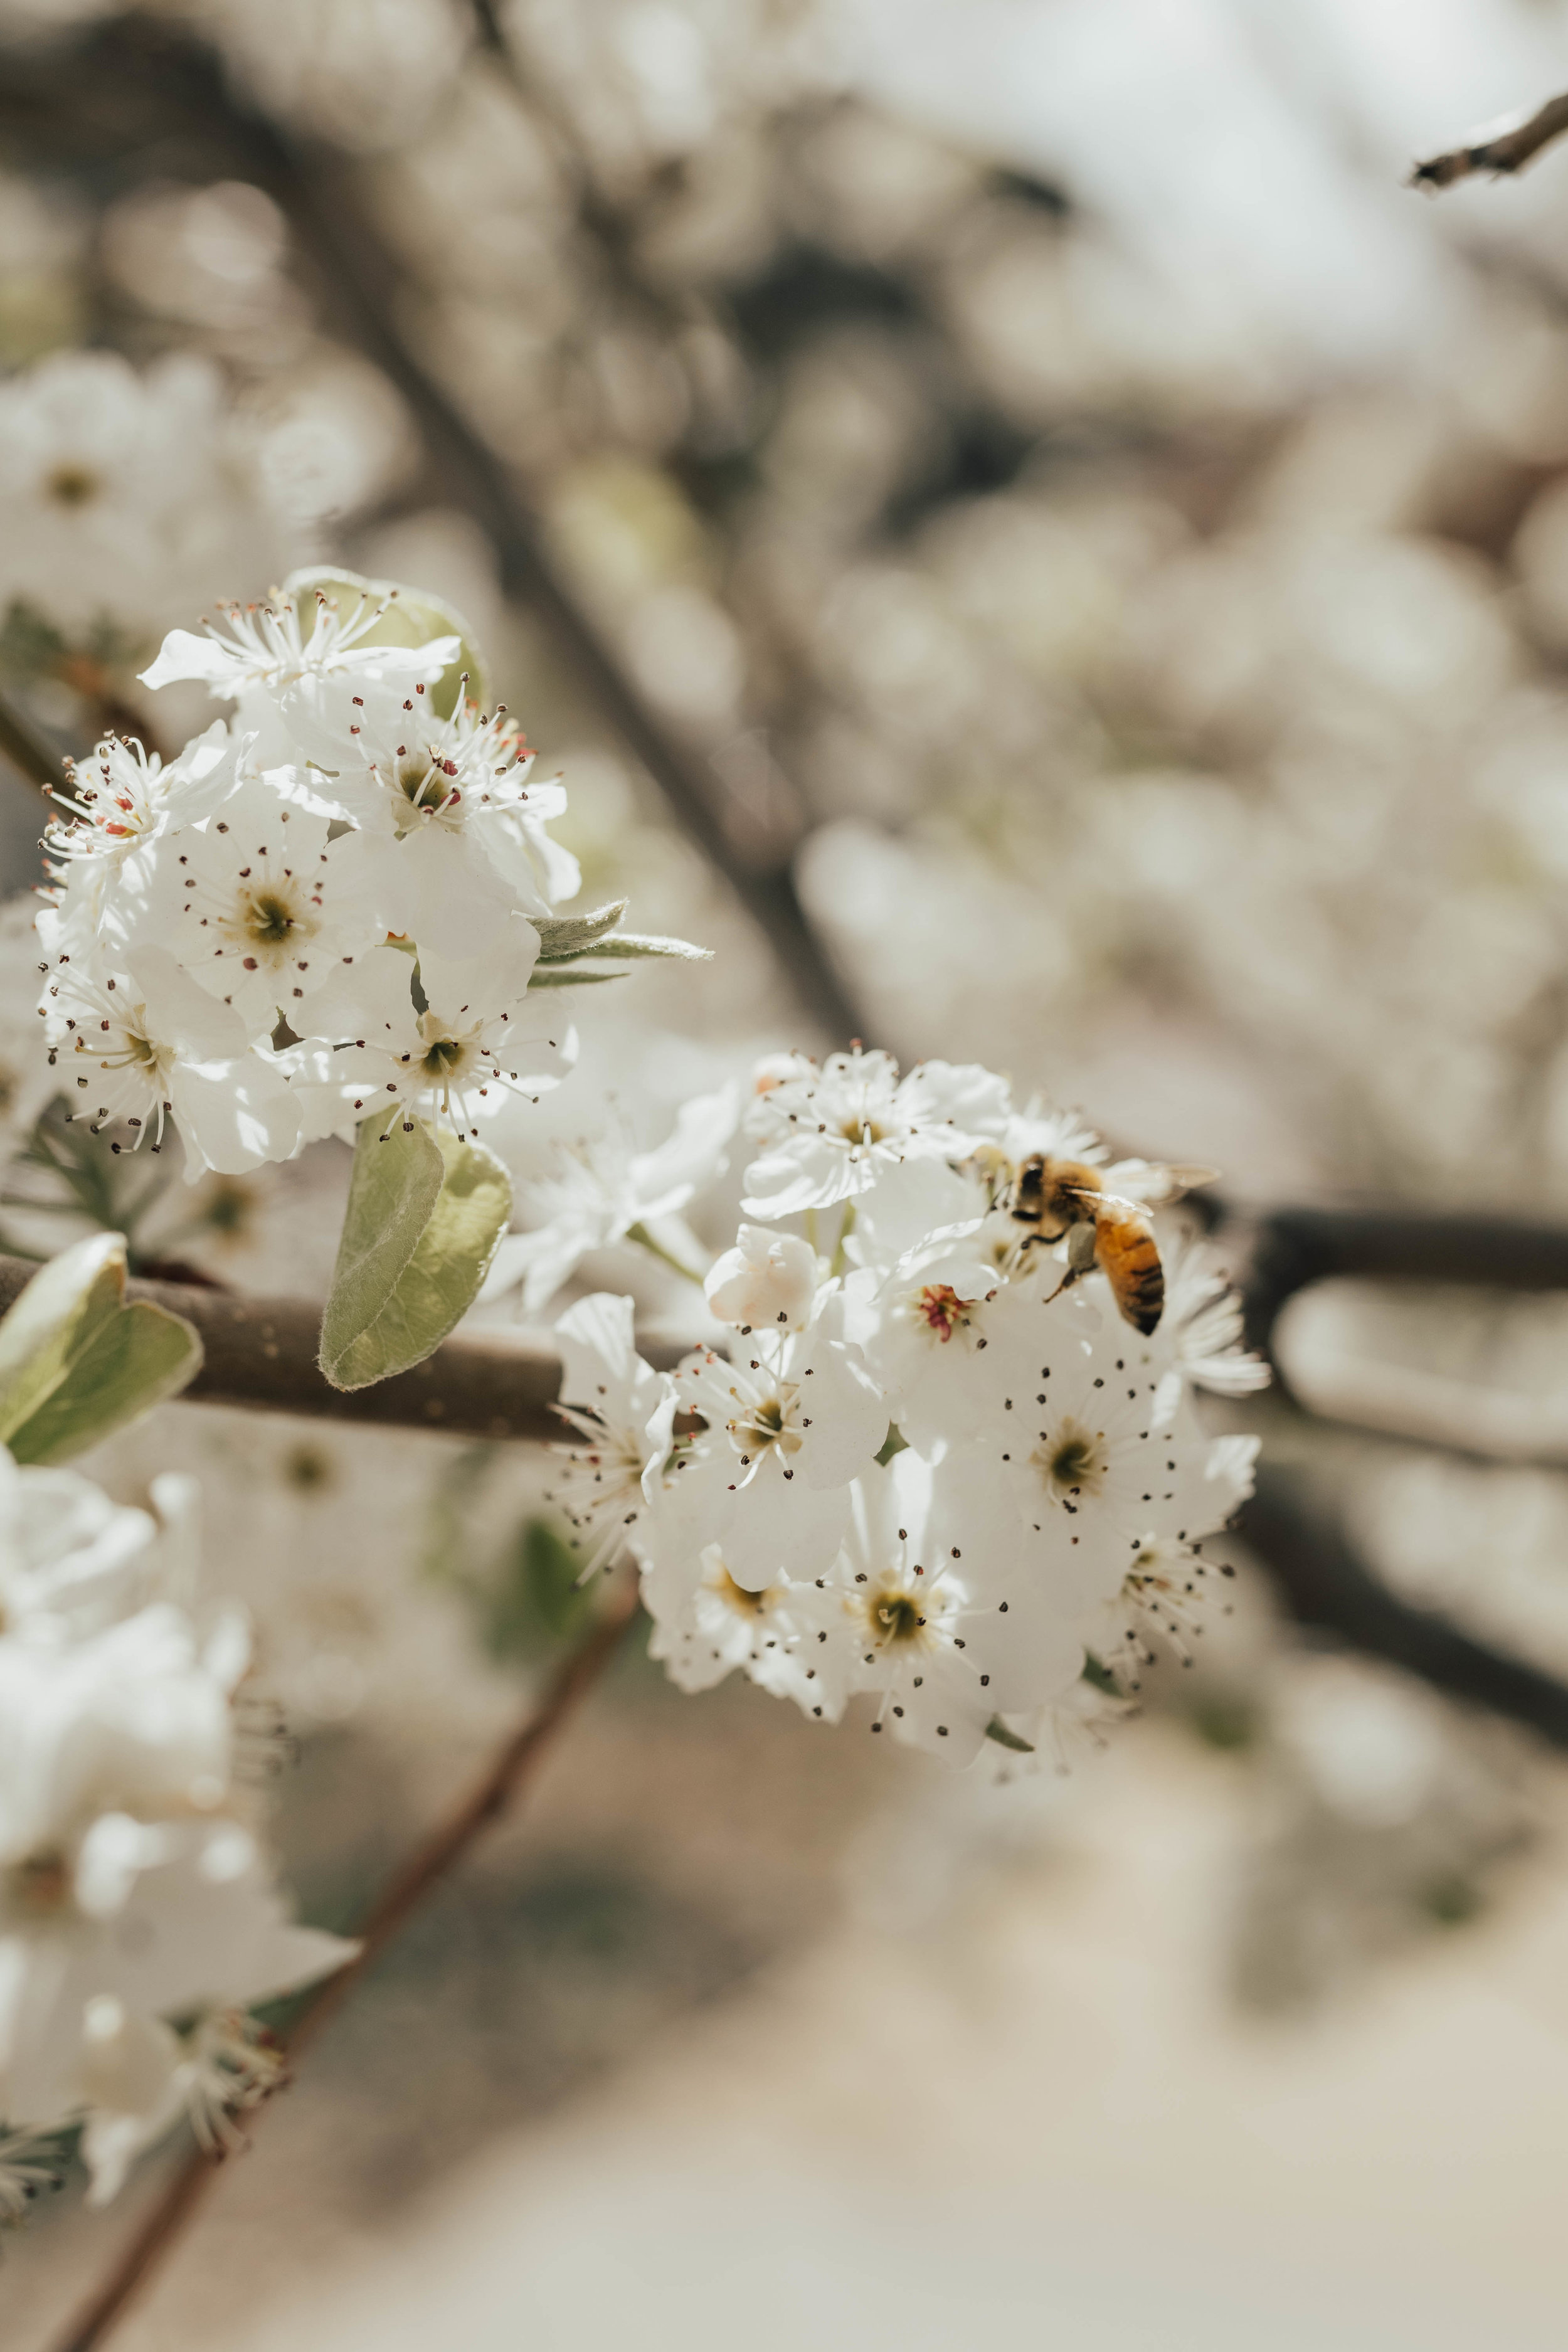 Bumblebee on cherry blossoms